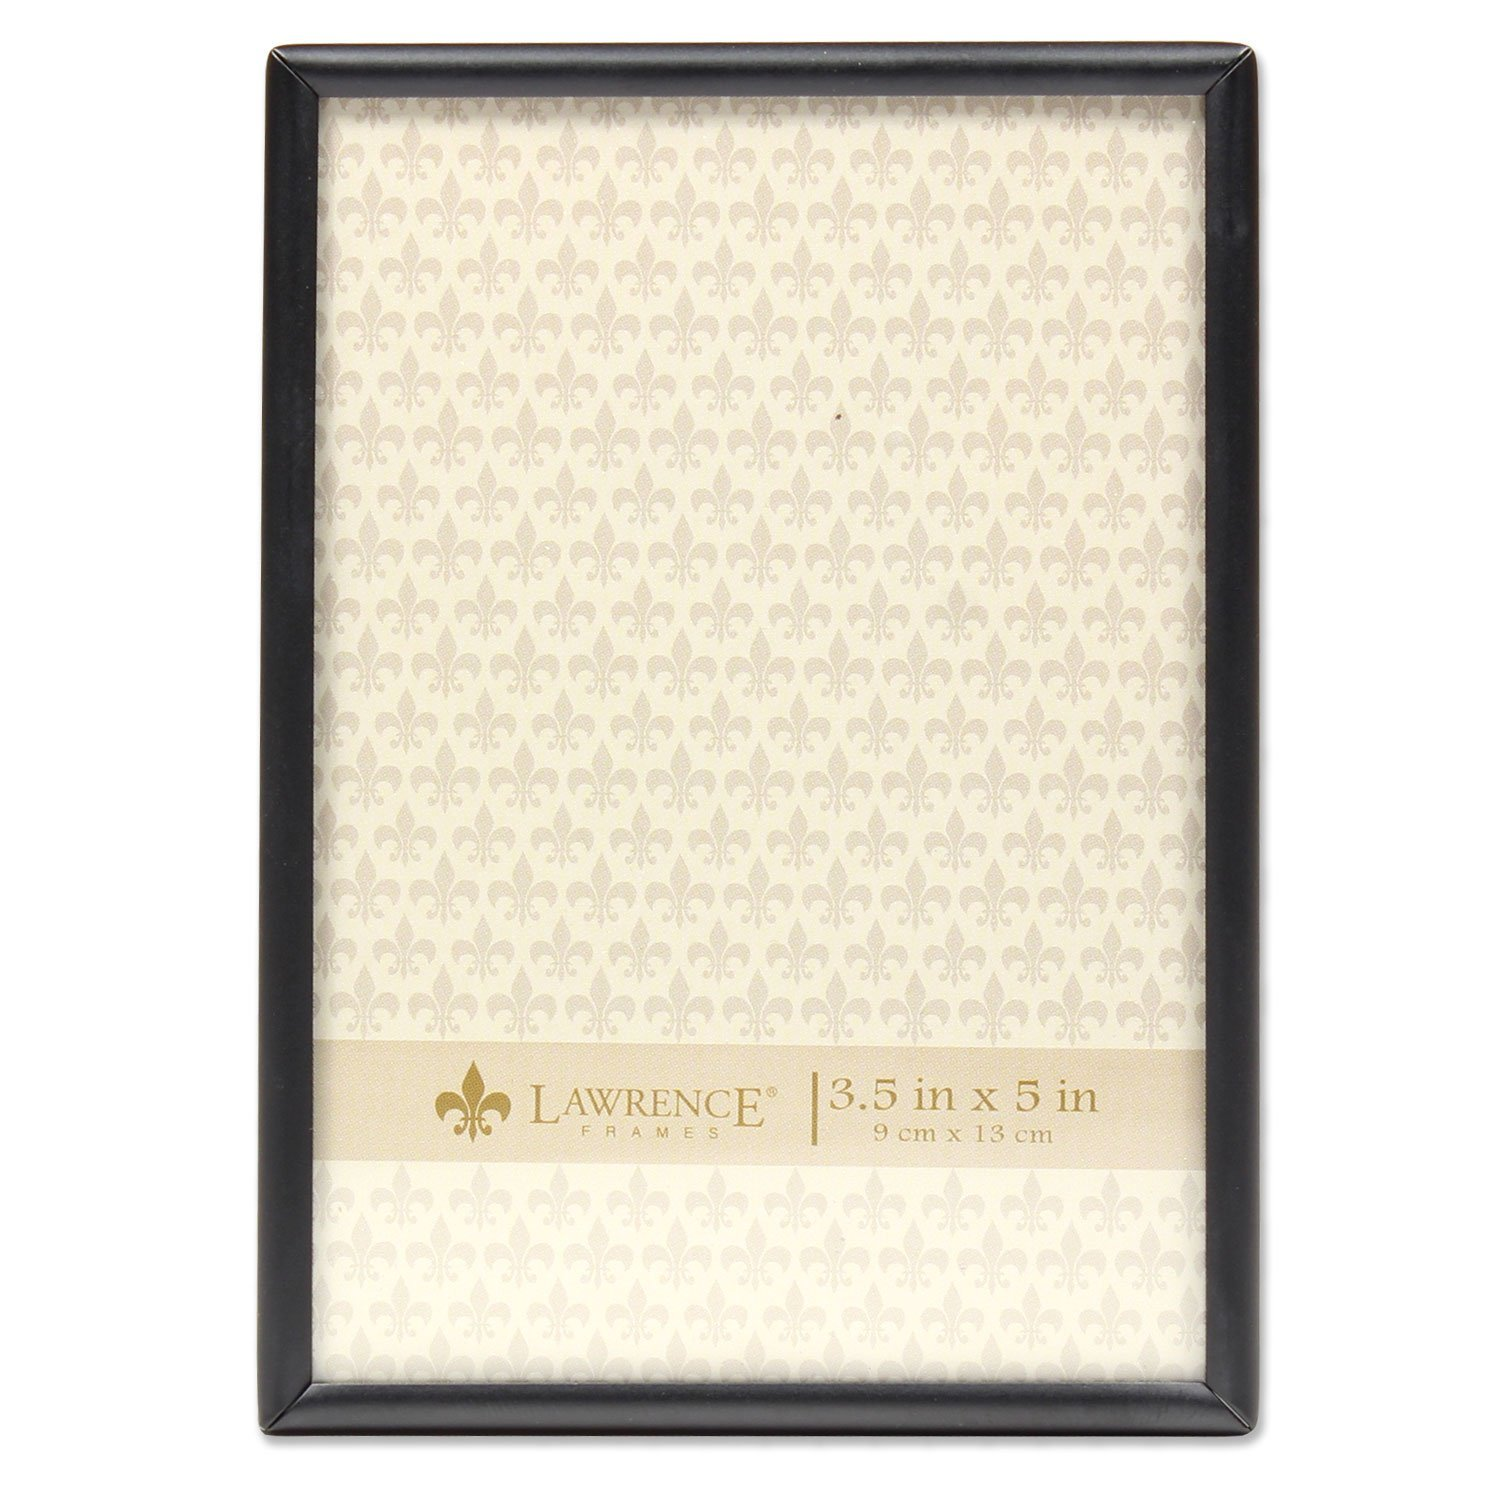 Lawrence Frames 3.5x5 Simply Black Picture Frame